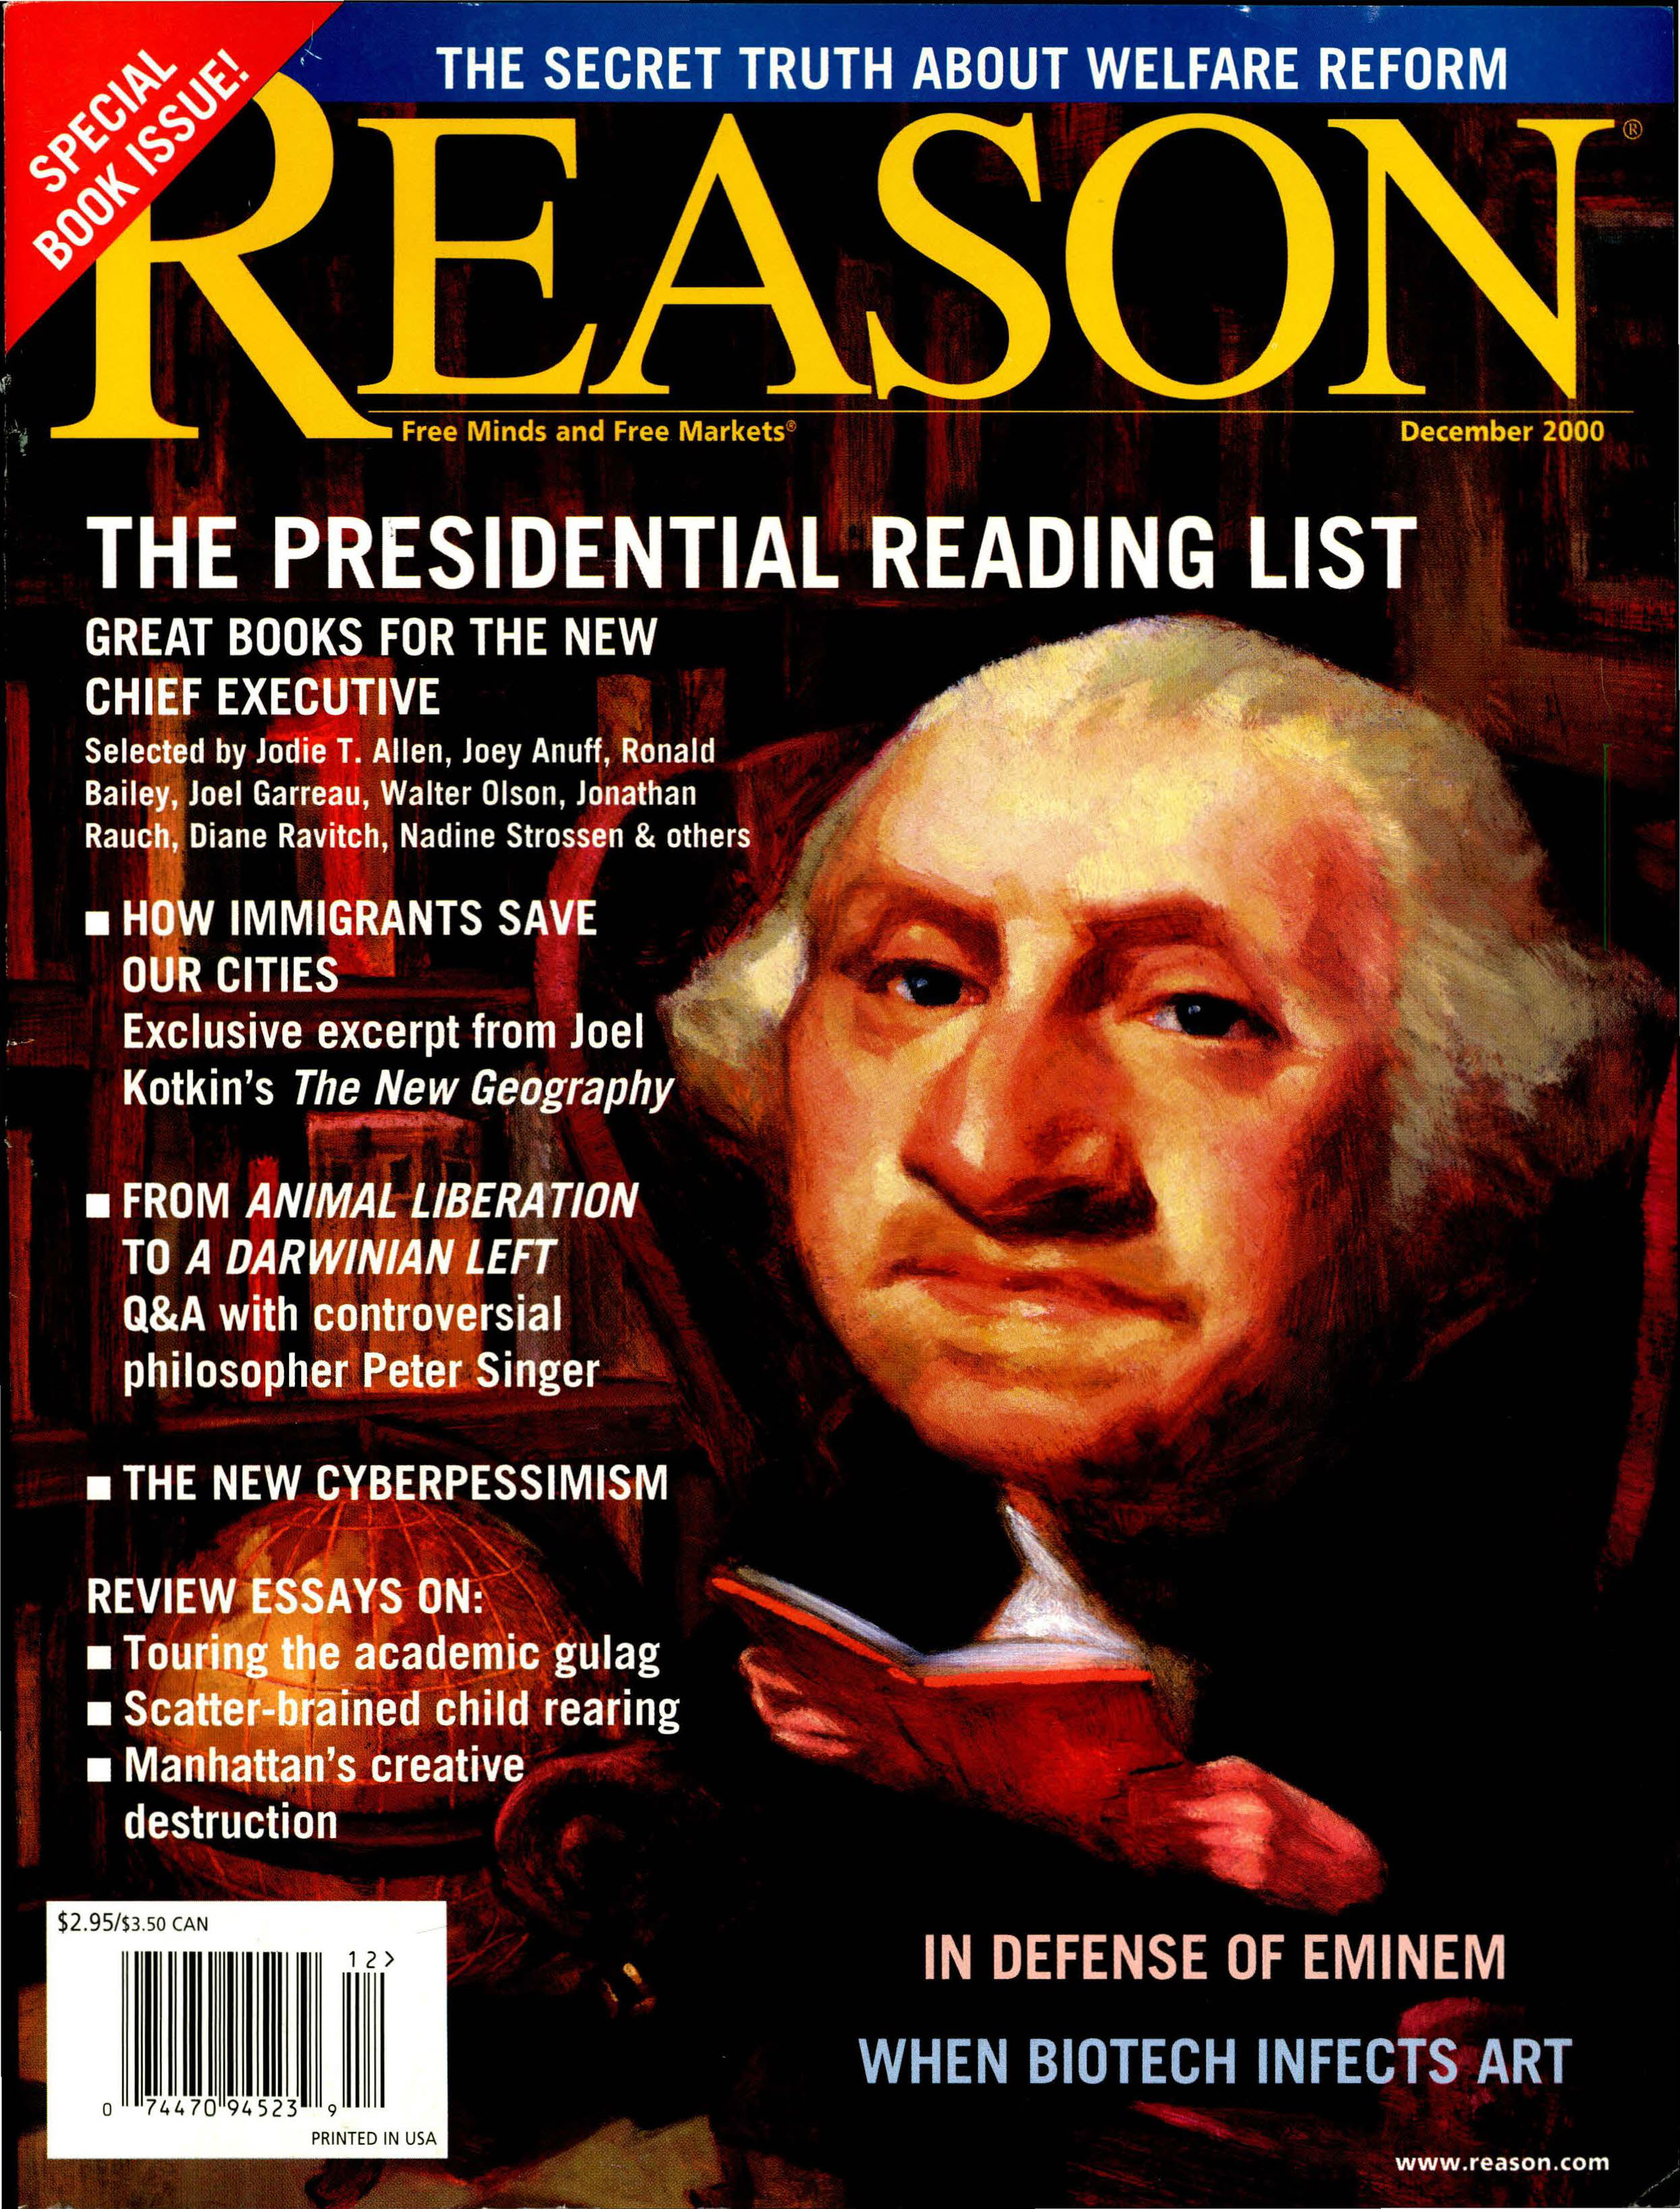 Reason Magazine, December 2000 cover image